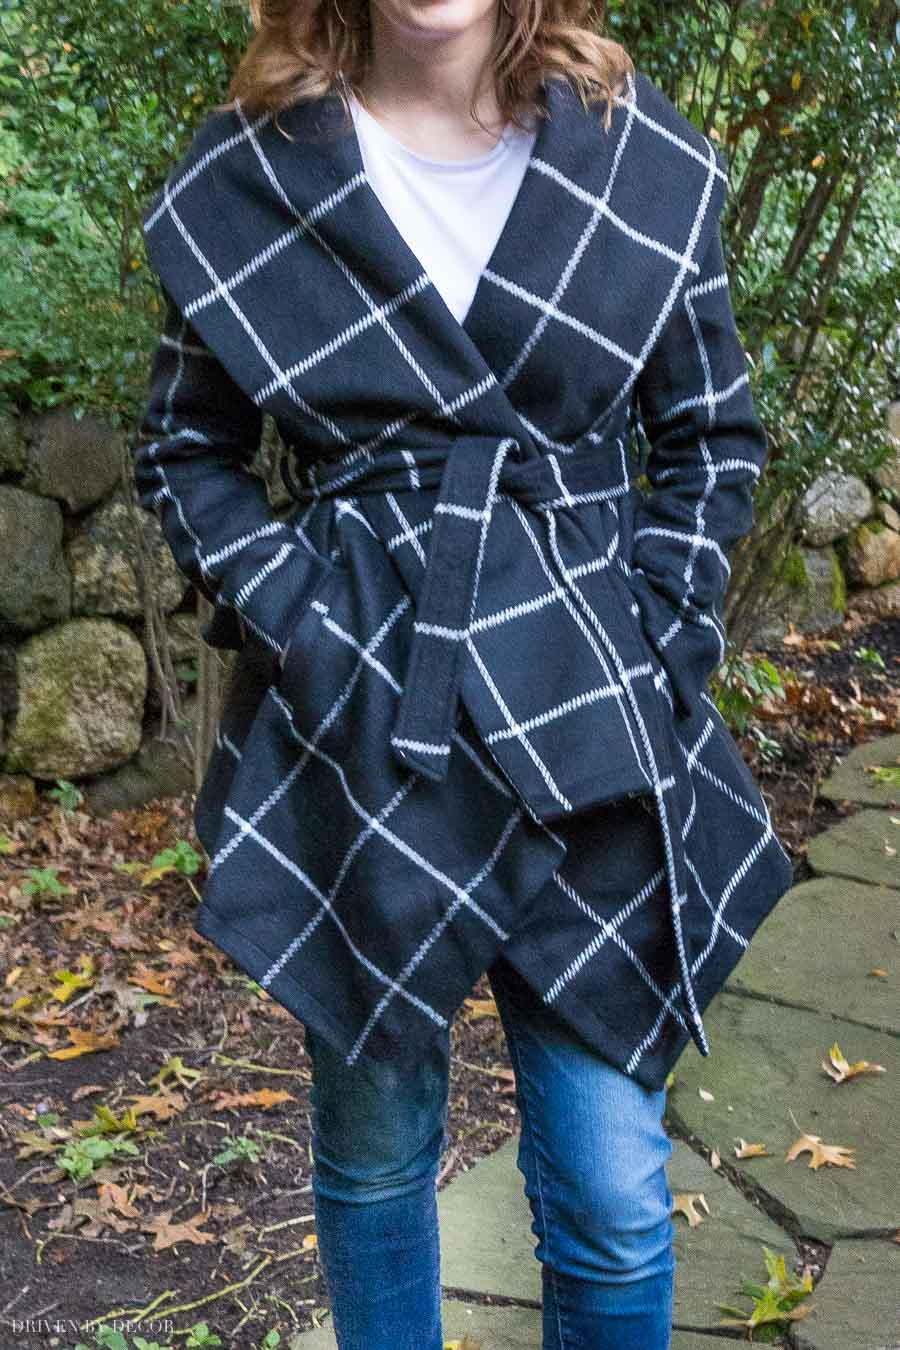 Love, love, love this stylish black and white jacket!